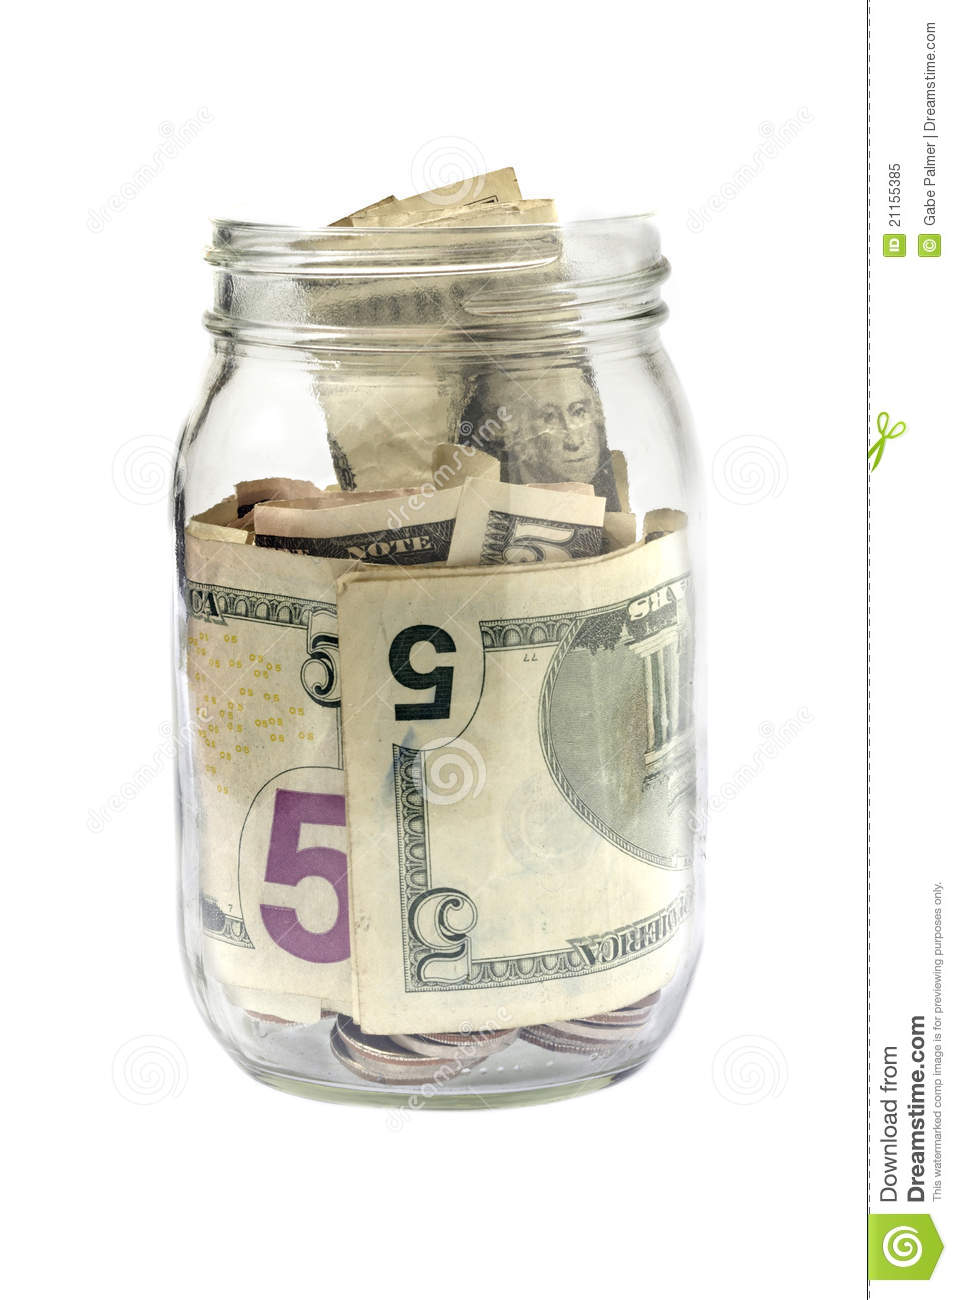 glass jar contains coin as well as paper currency in denominations ...